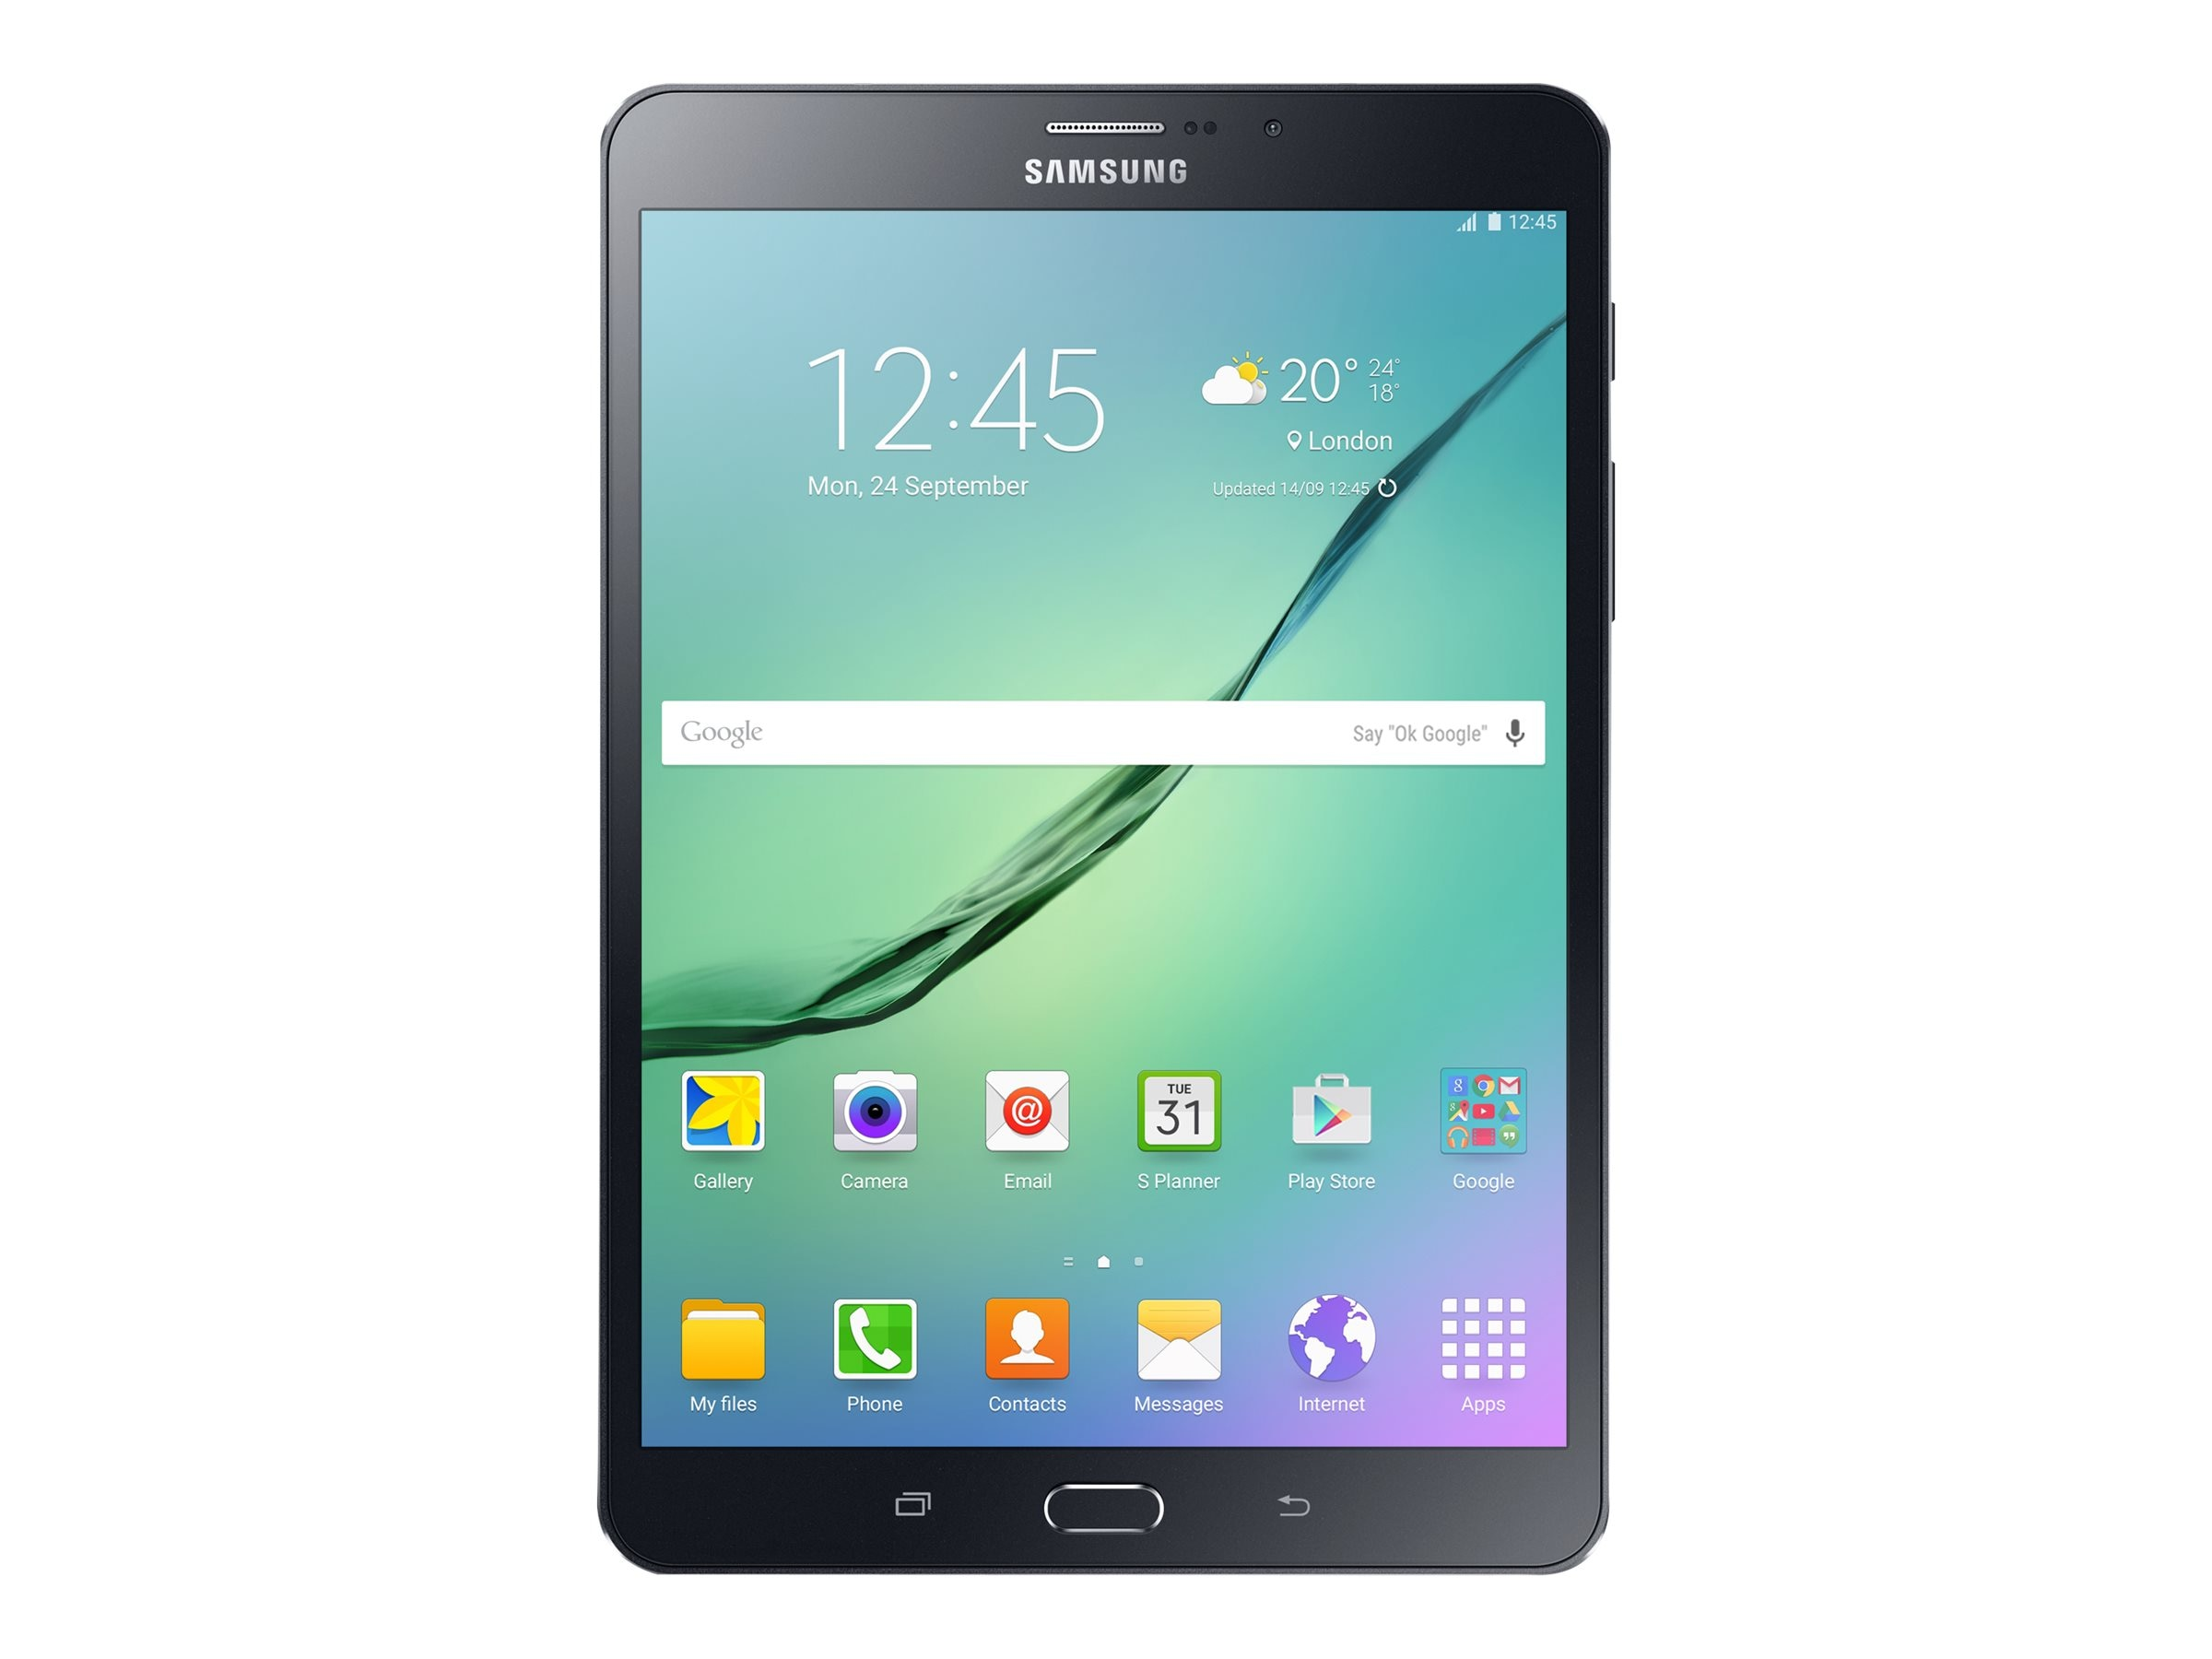 Samsung Galaxy Tab S2 32GB WiFi 8, Black, SM-T710NZKEXAR, 27719111, Tablets